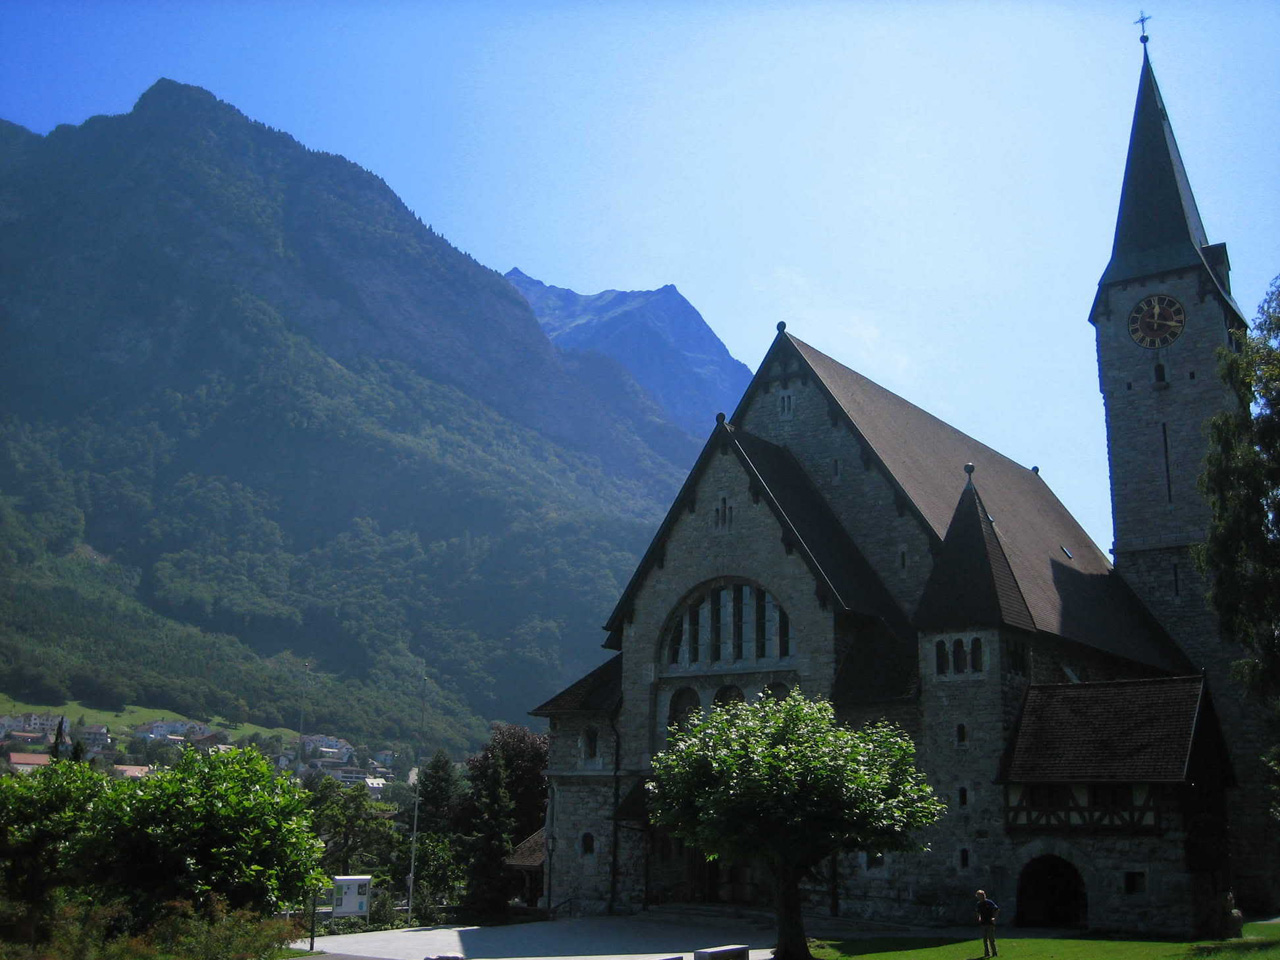 Holiday Rental Opportunities – Rent the Country of Liechtenstein for $70,000 a Night